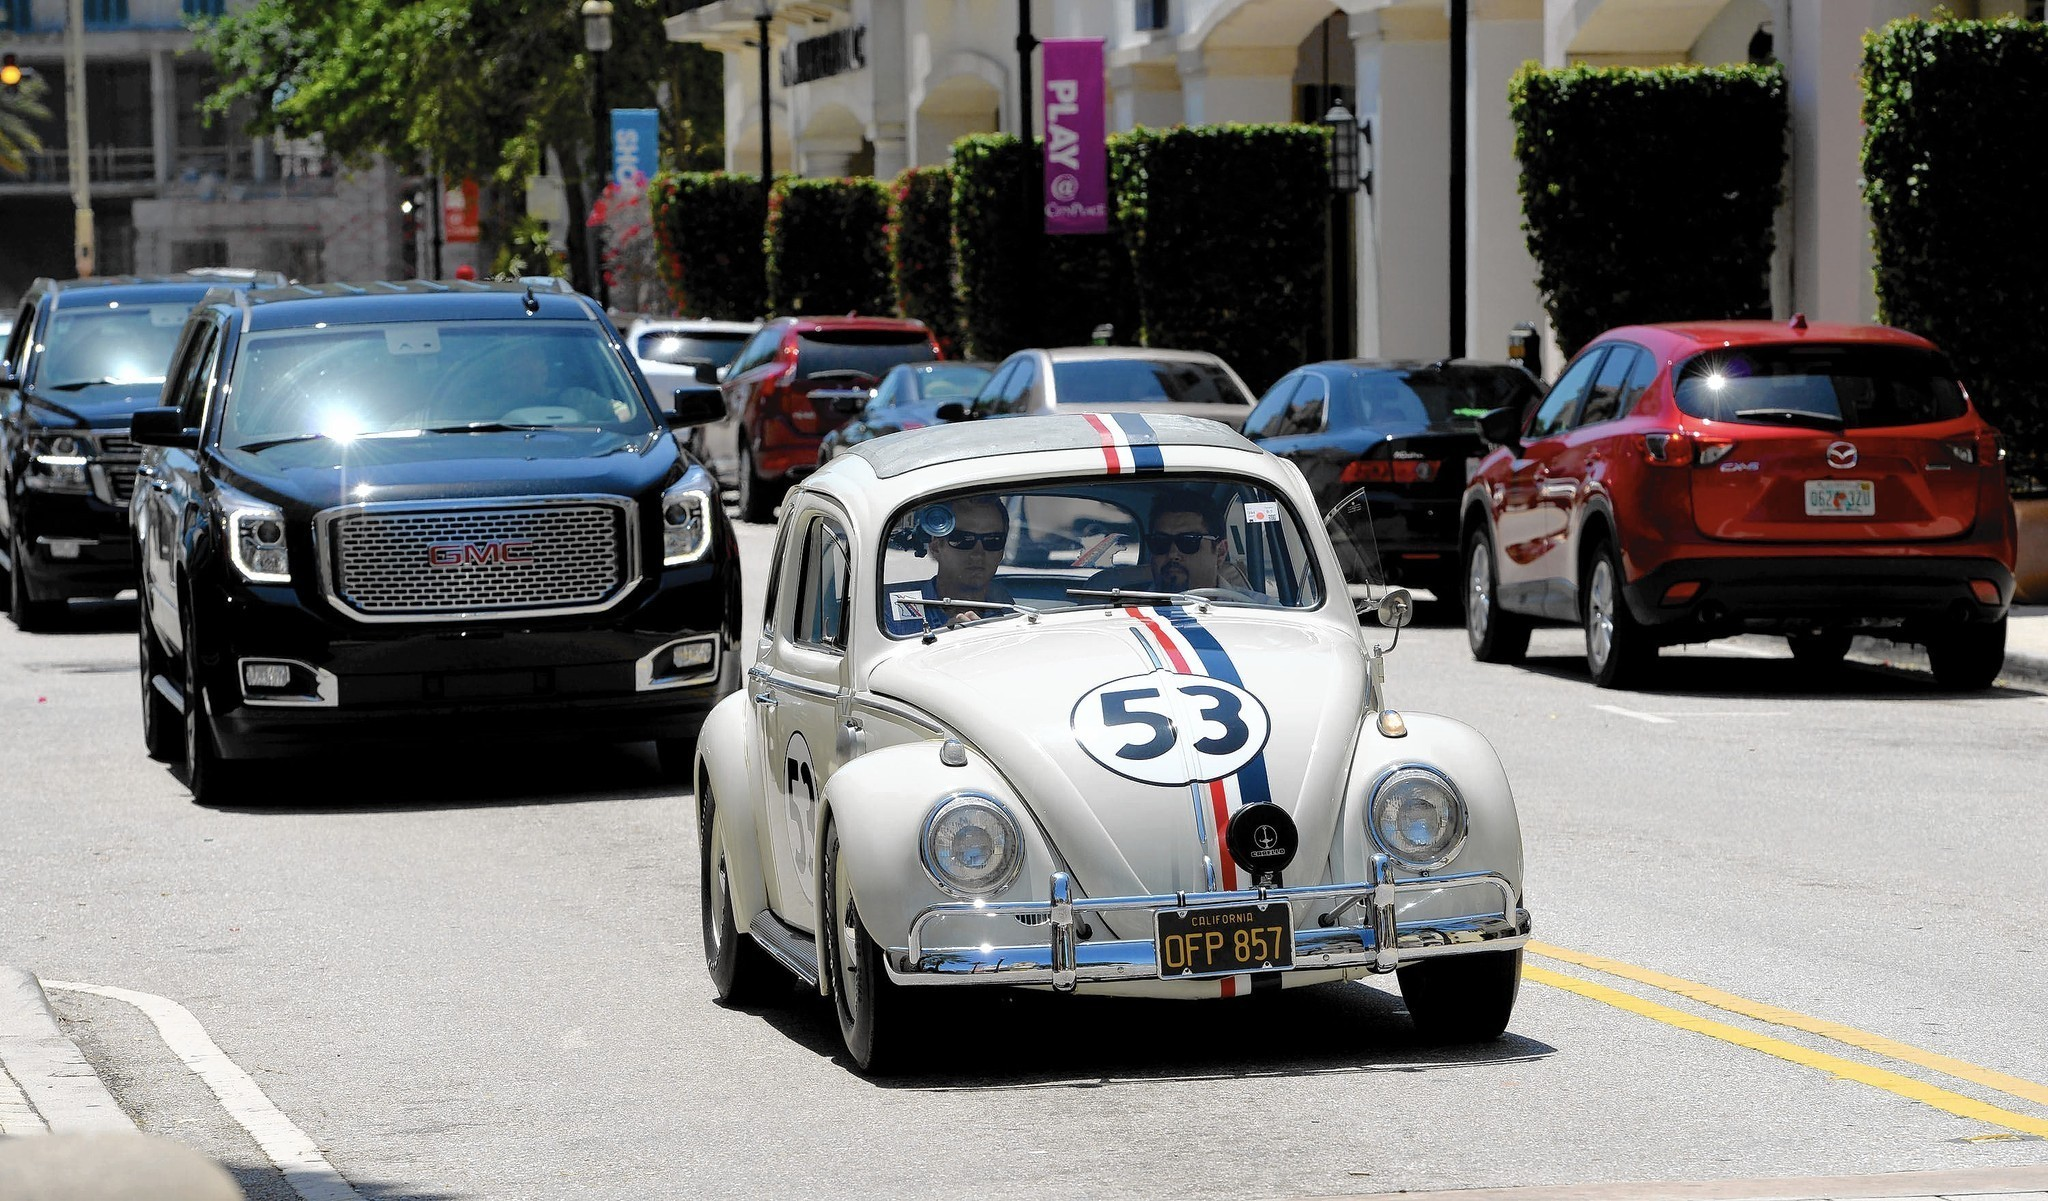 Volkswagen Thing For Sale >> Herbie the Love Bug up for sale - Sun Sentinel